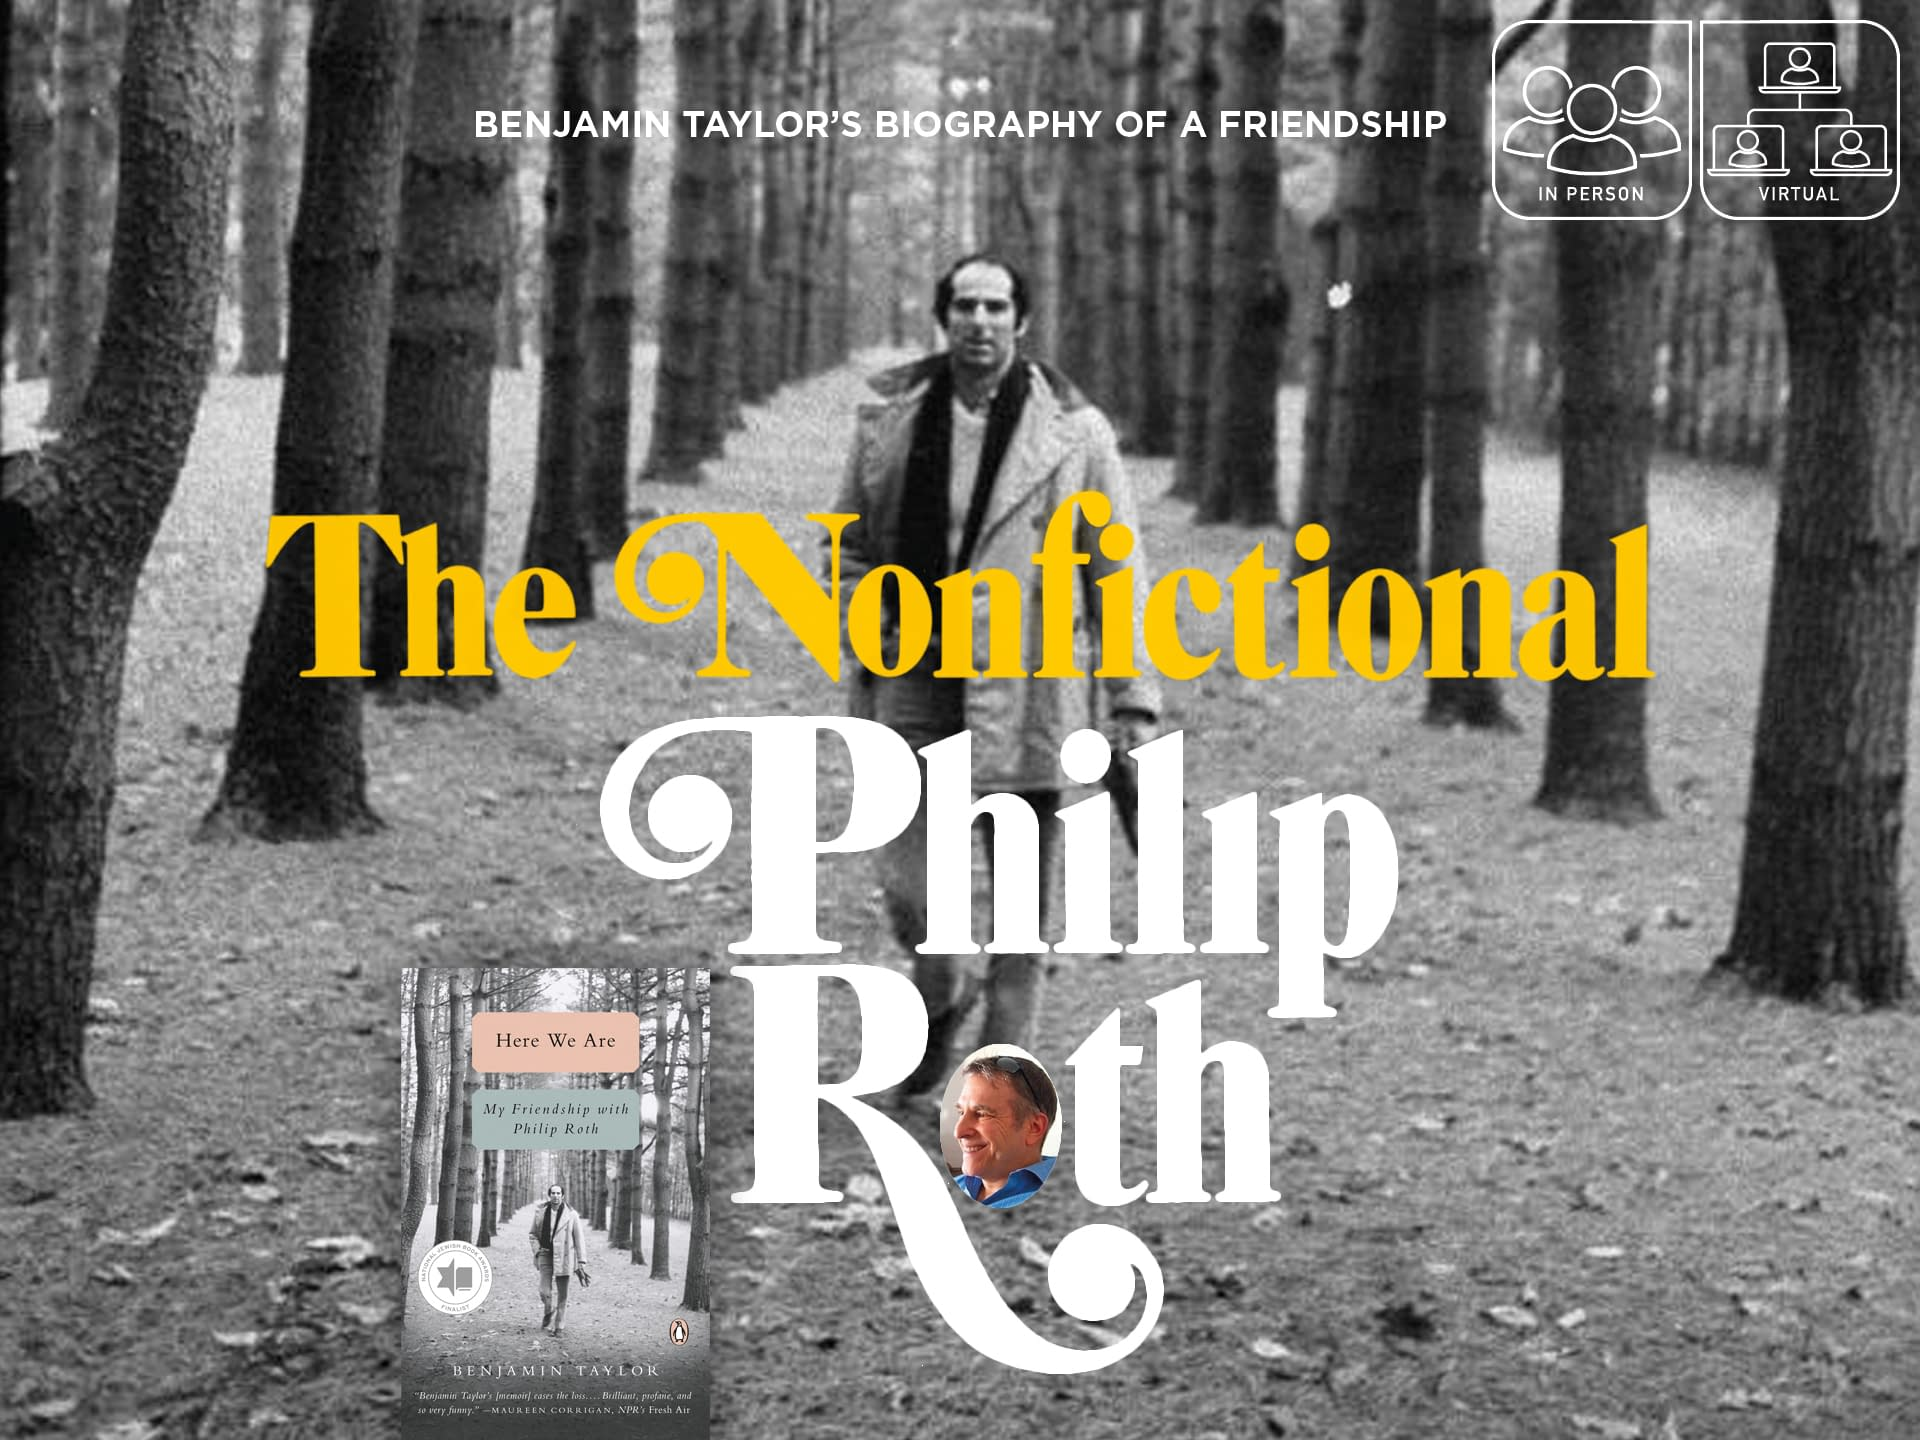 The Nonfictional Philip Roth 3 - - author